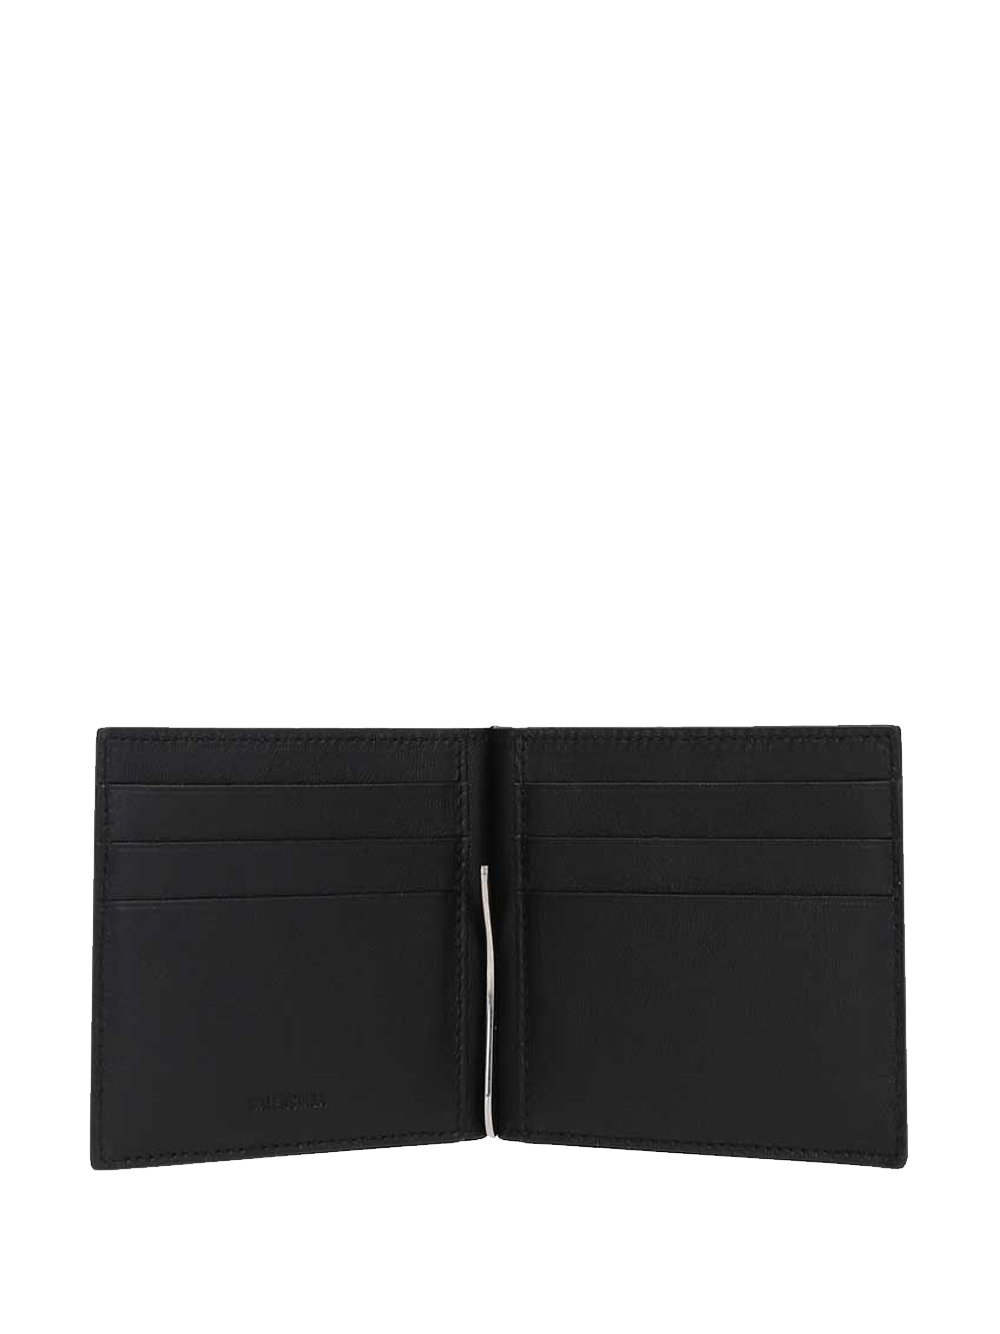 BALENCIAGA Cash Fold Card Holder Black